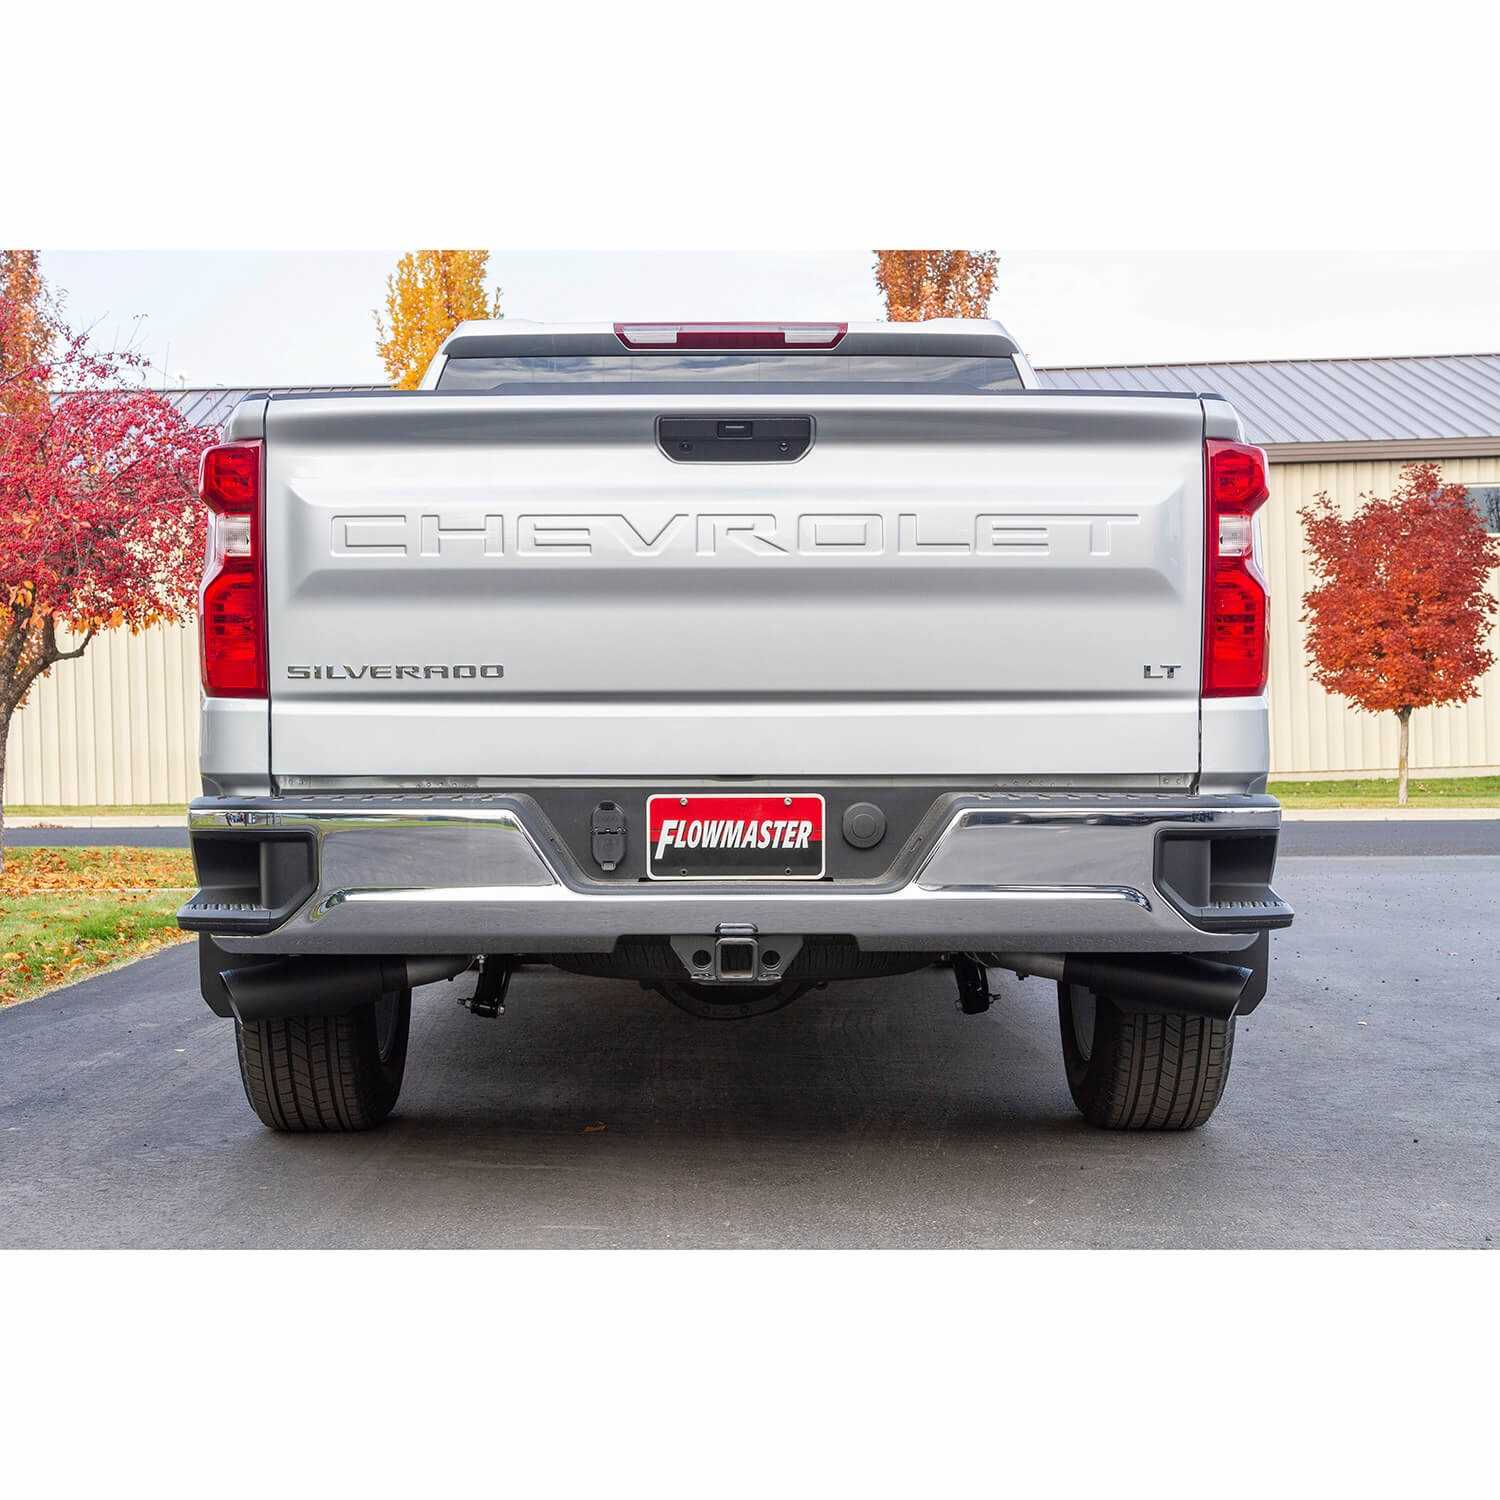 817854 Flowmaster Outlaw Series™ Cat Back Exhaust System